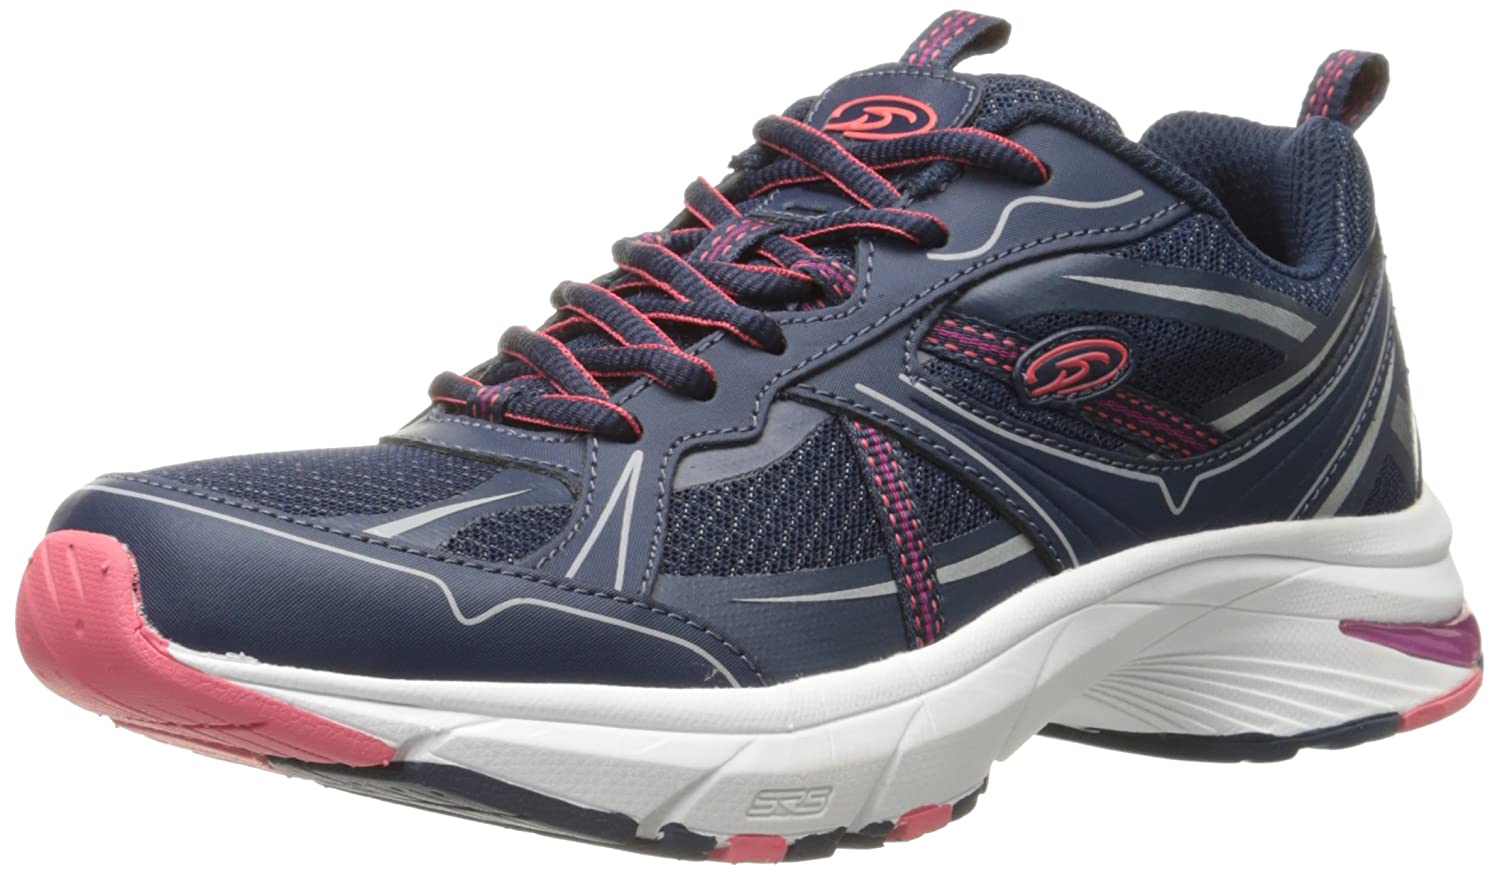 Dr. Scholl's Women's Persue Fashion Sneaker B0179FOEI2 9.5 B(M) US|Navy Leather